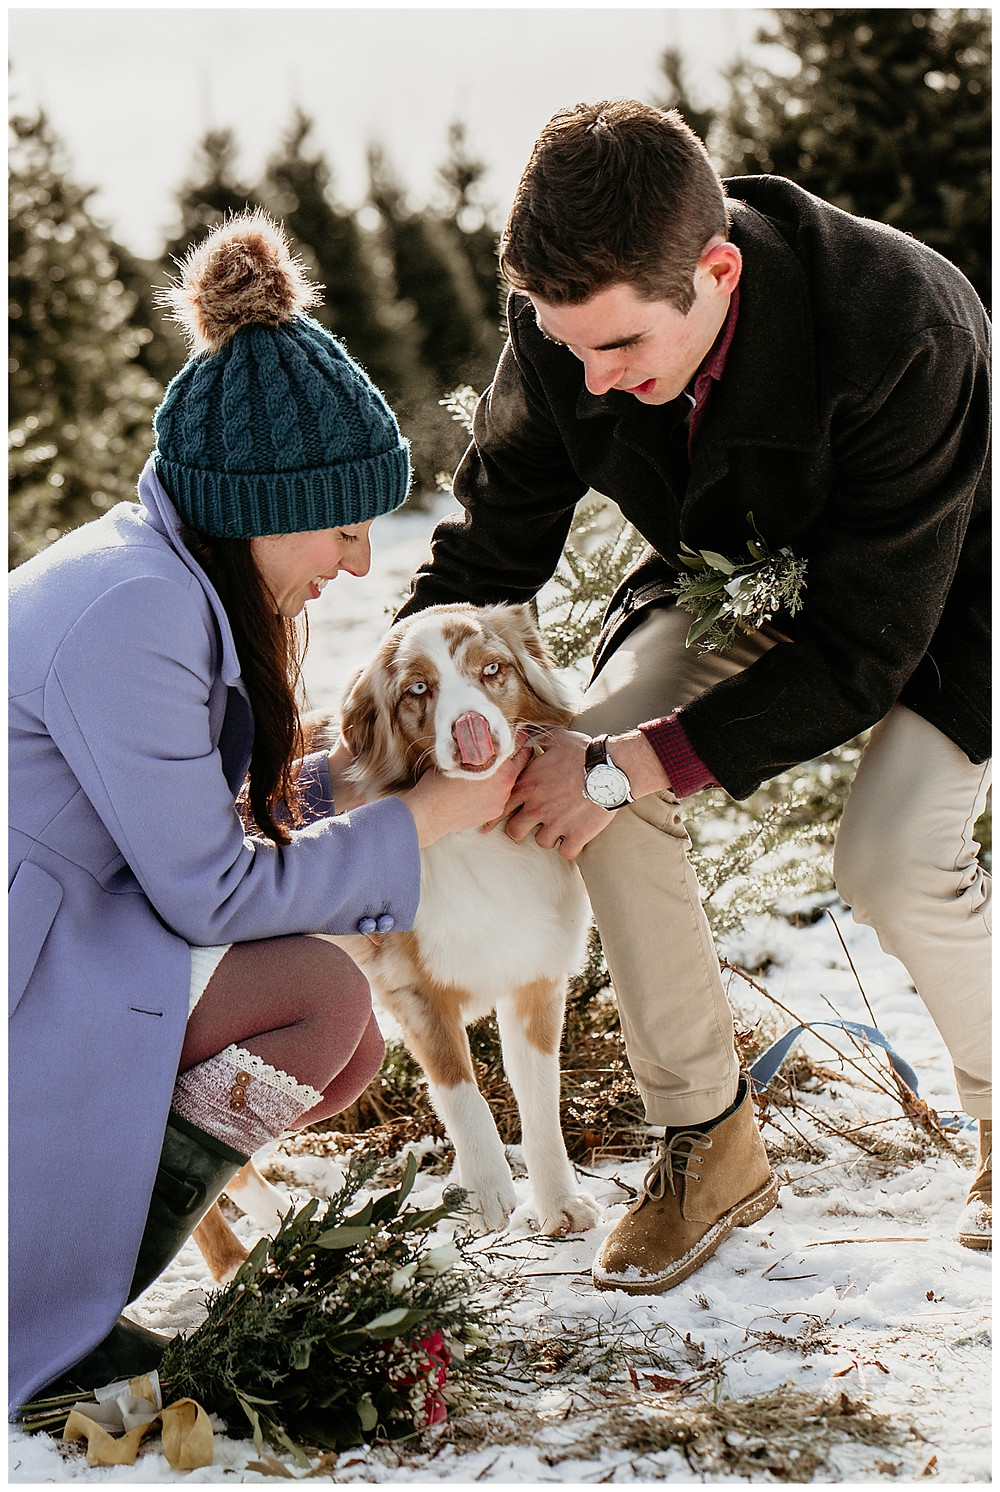 Couples Pre-Wedding Portraits at Vermont Tree Farm with Pup